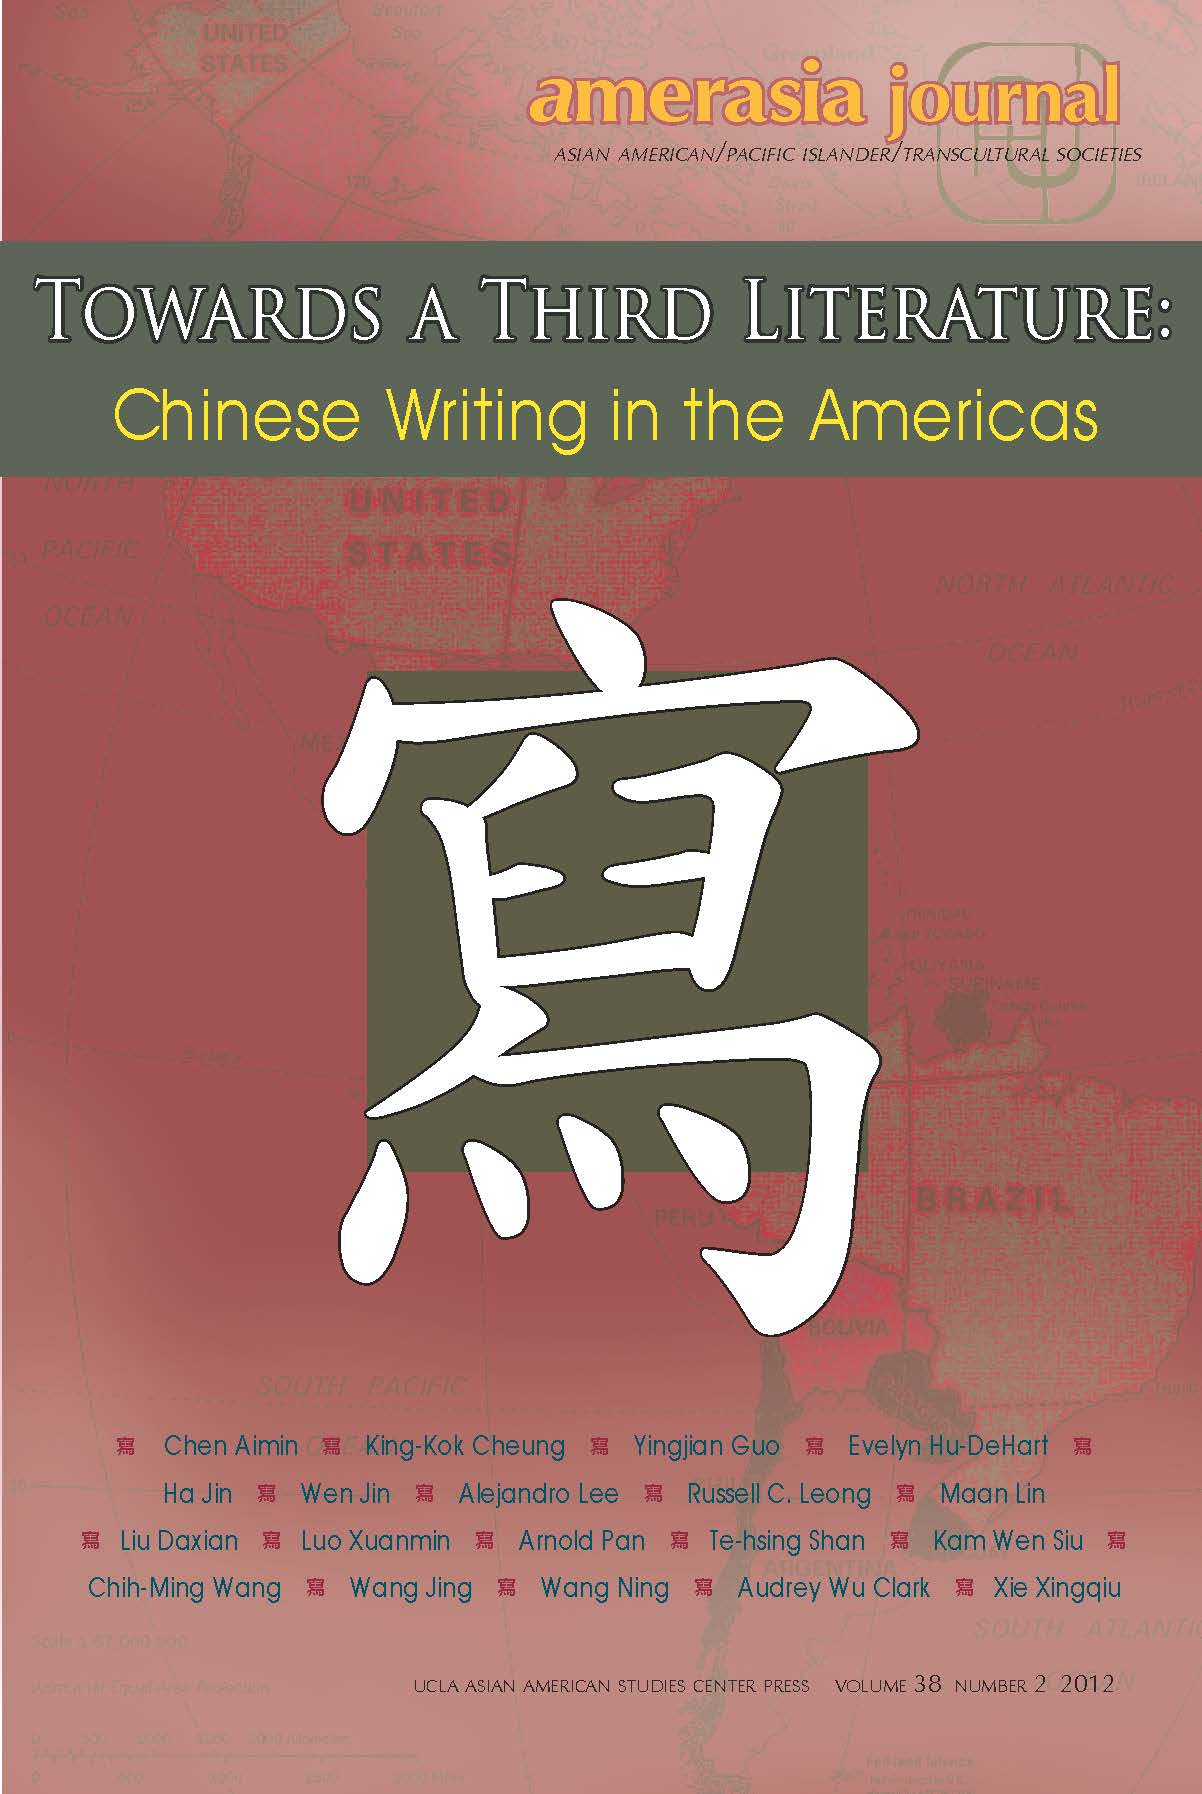 literary identity cultural identity being chinese in the book cover for towards a third literature